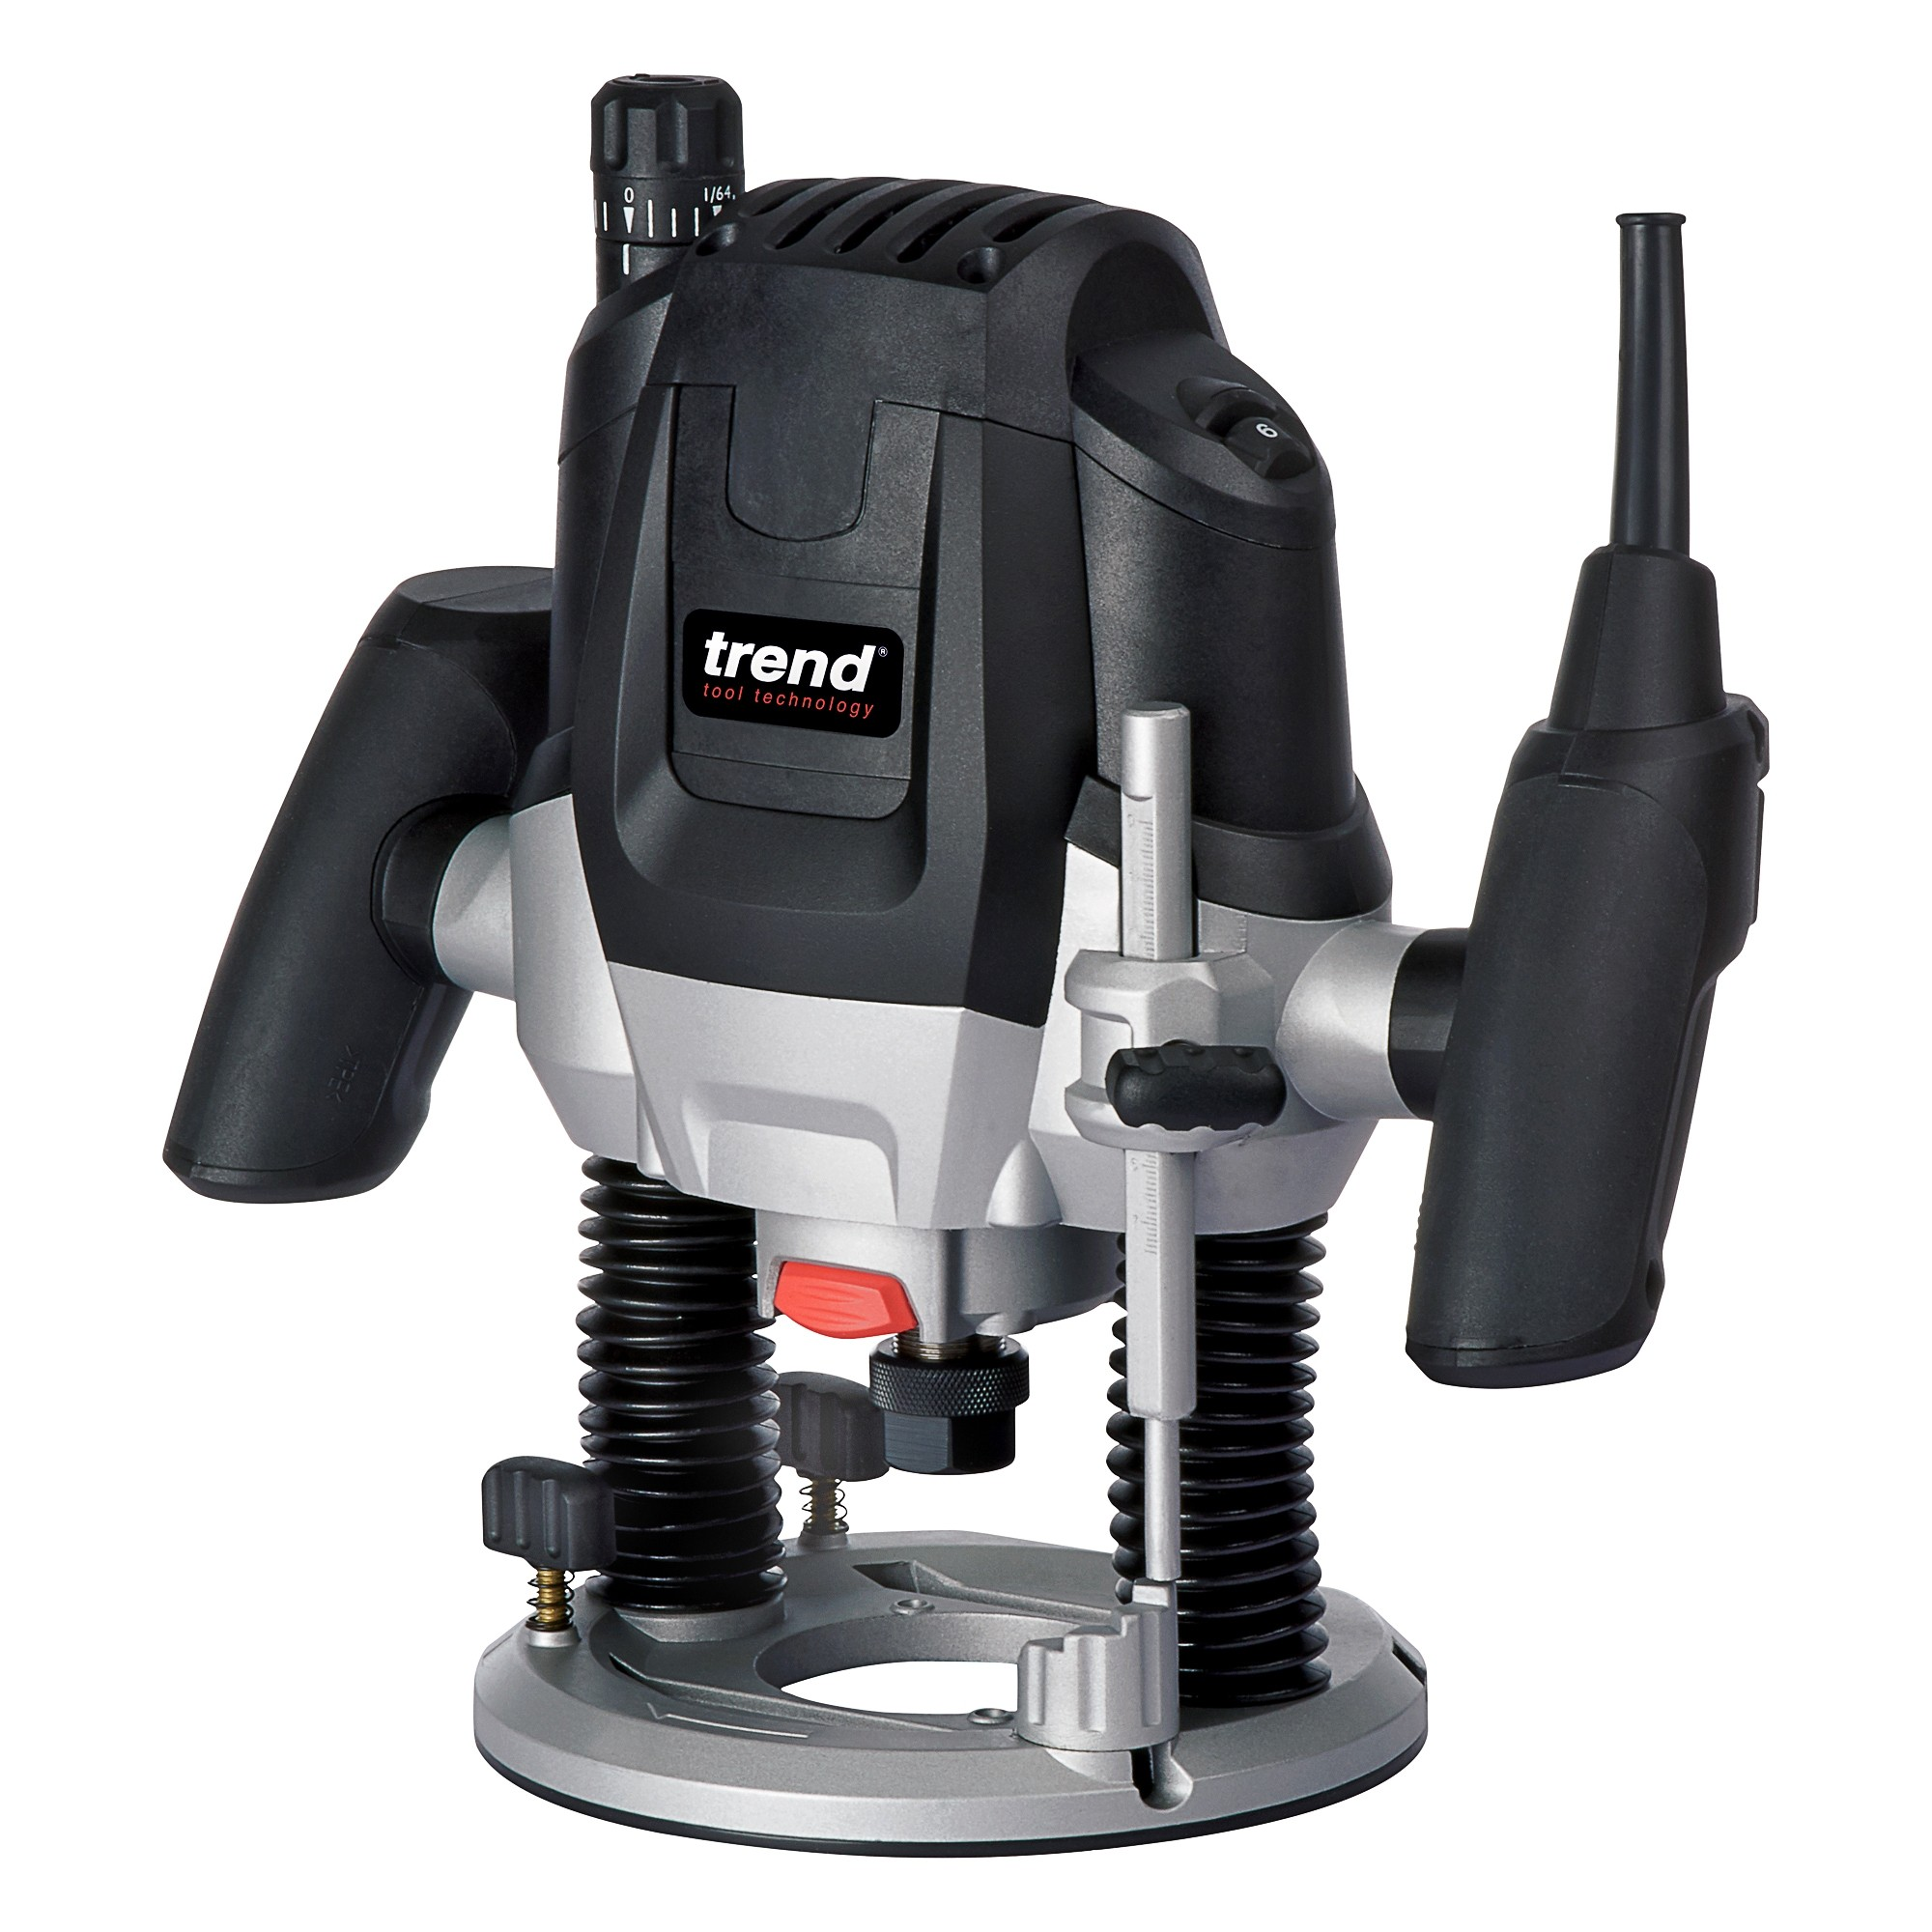 "Trend T7EK - 2100W 1/2"" Variable Speed Router 240V + FREE 1/2"" Cutter Storage Trays + 6 Piece 1/2"" Cutter Set"